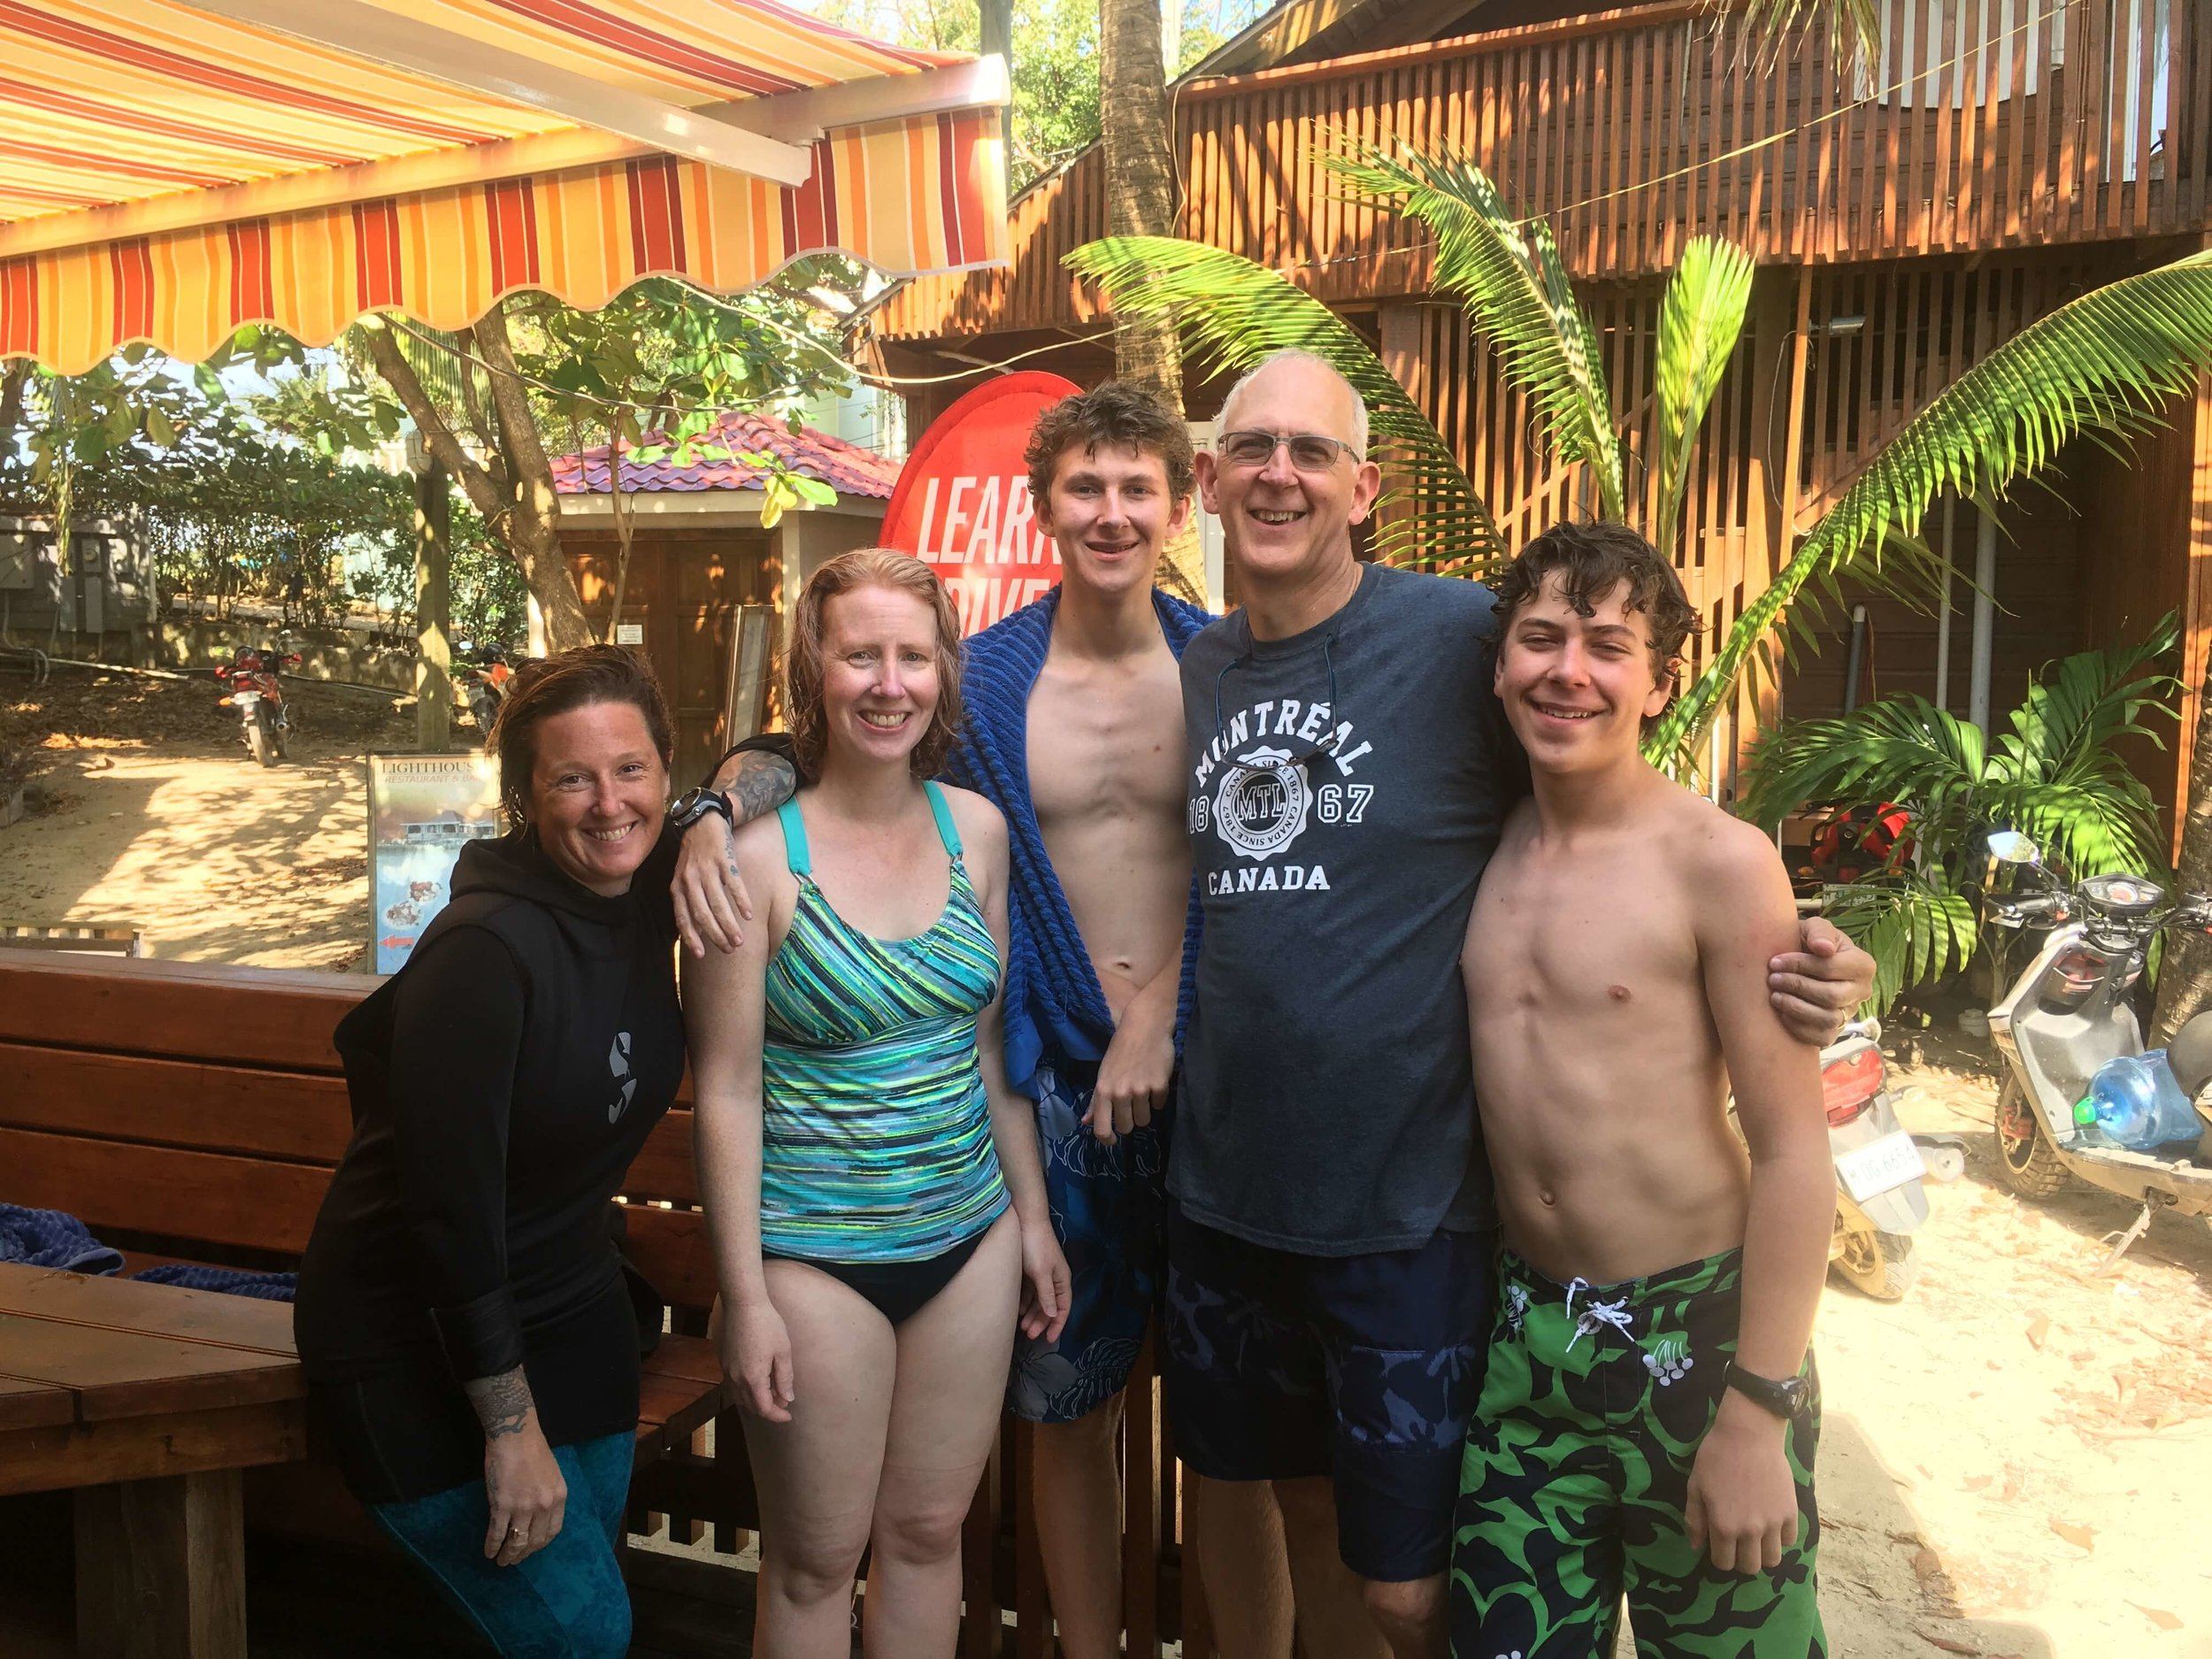 Susan, Brad, Adam, and Will tried Scuba Diving!